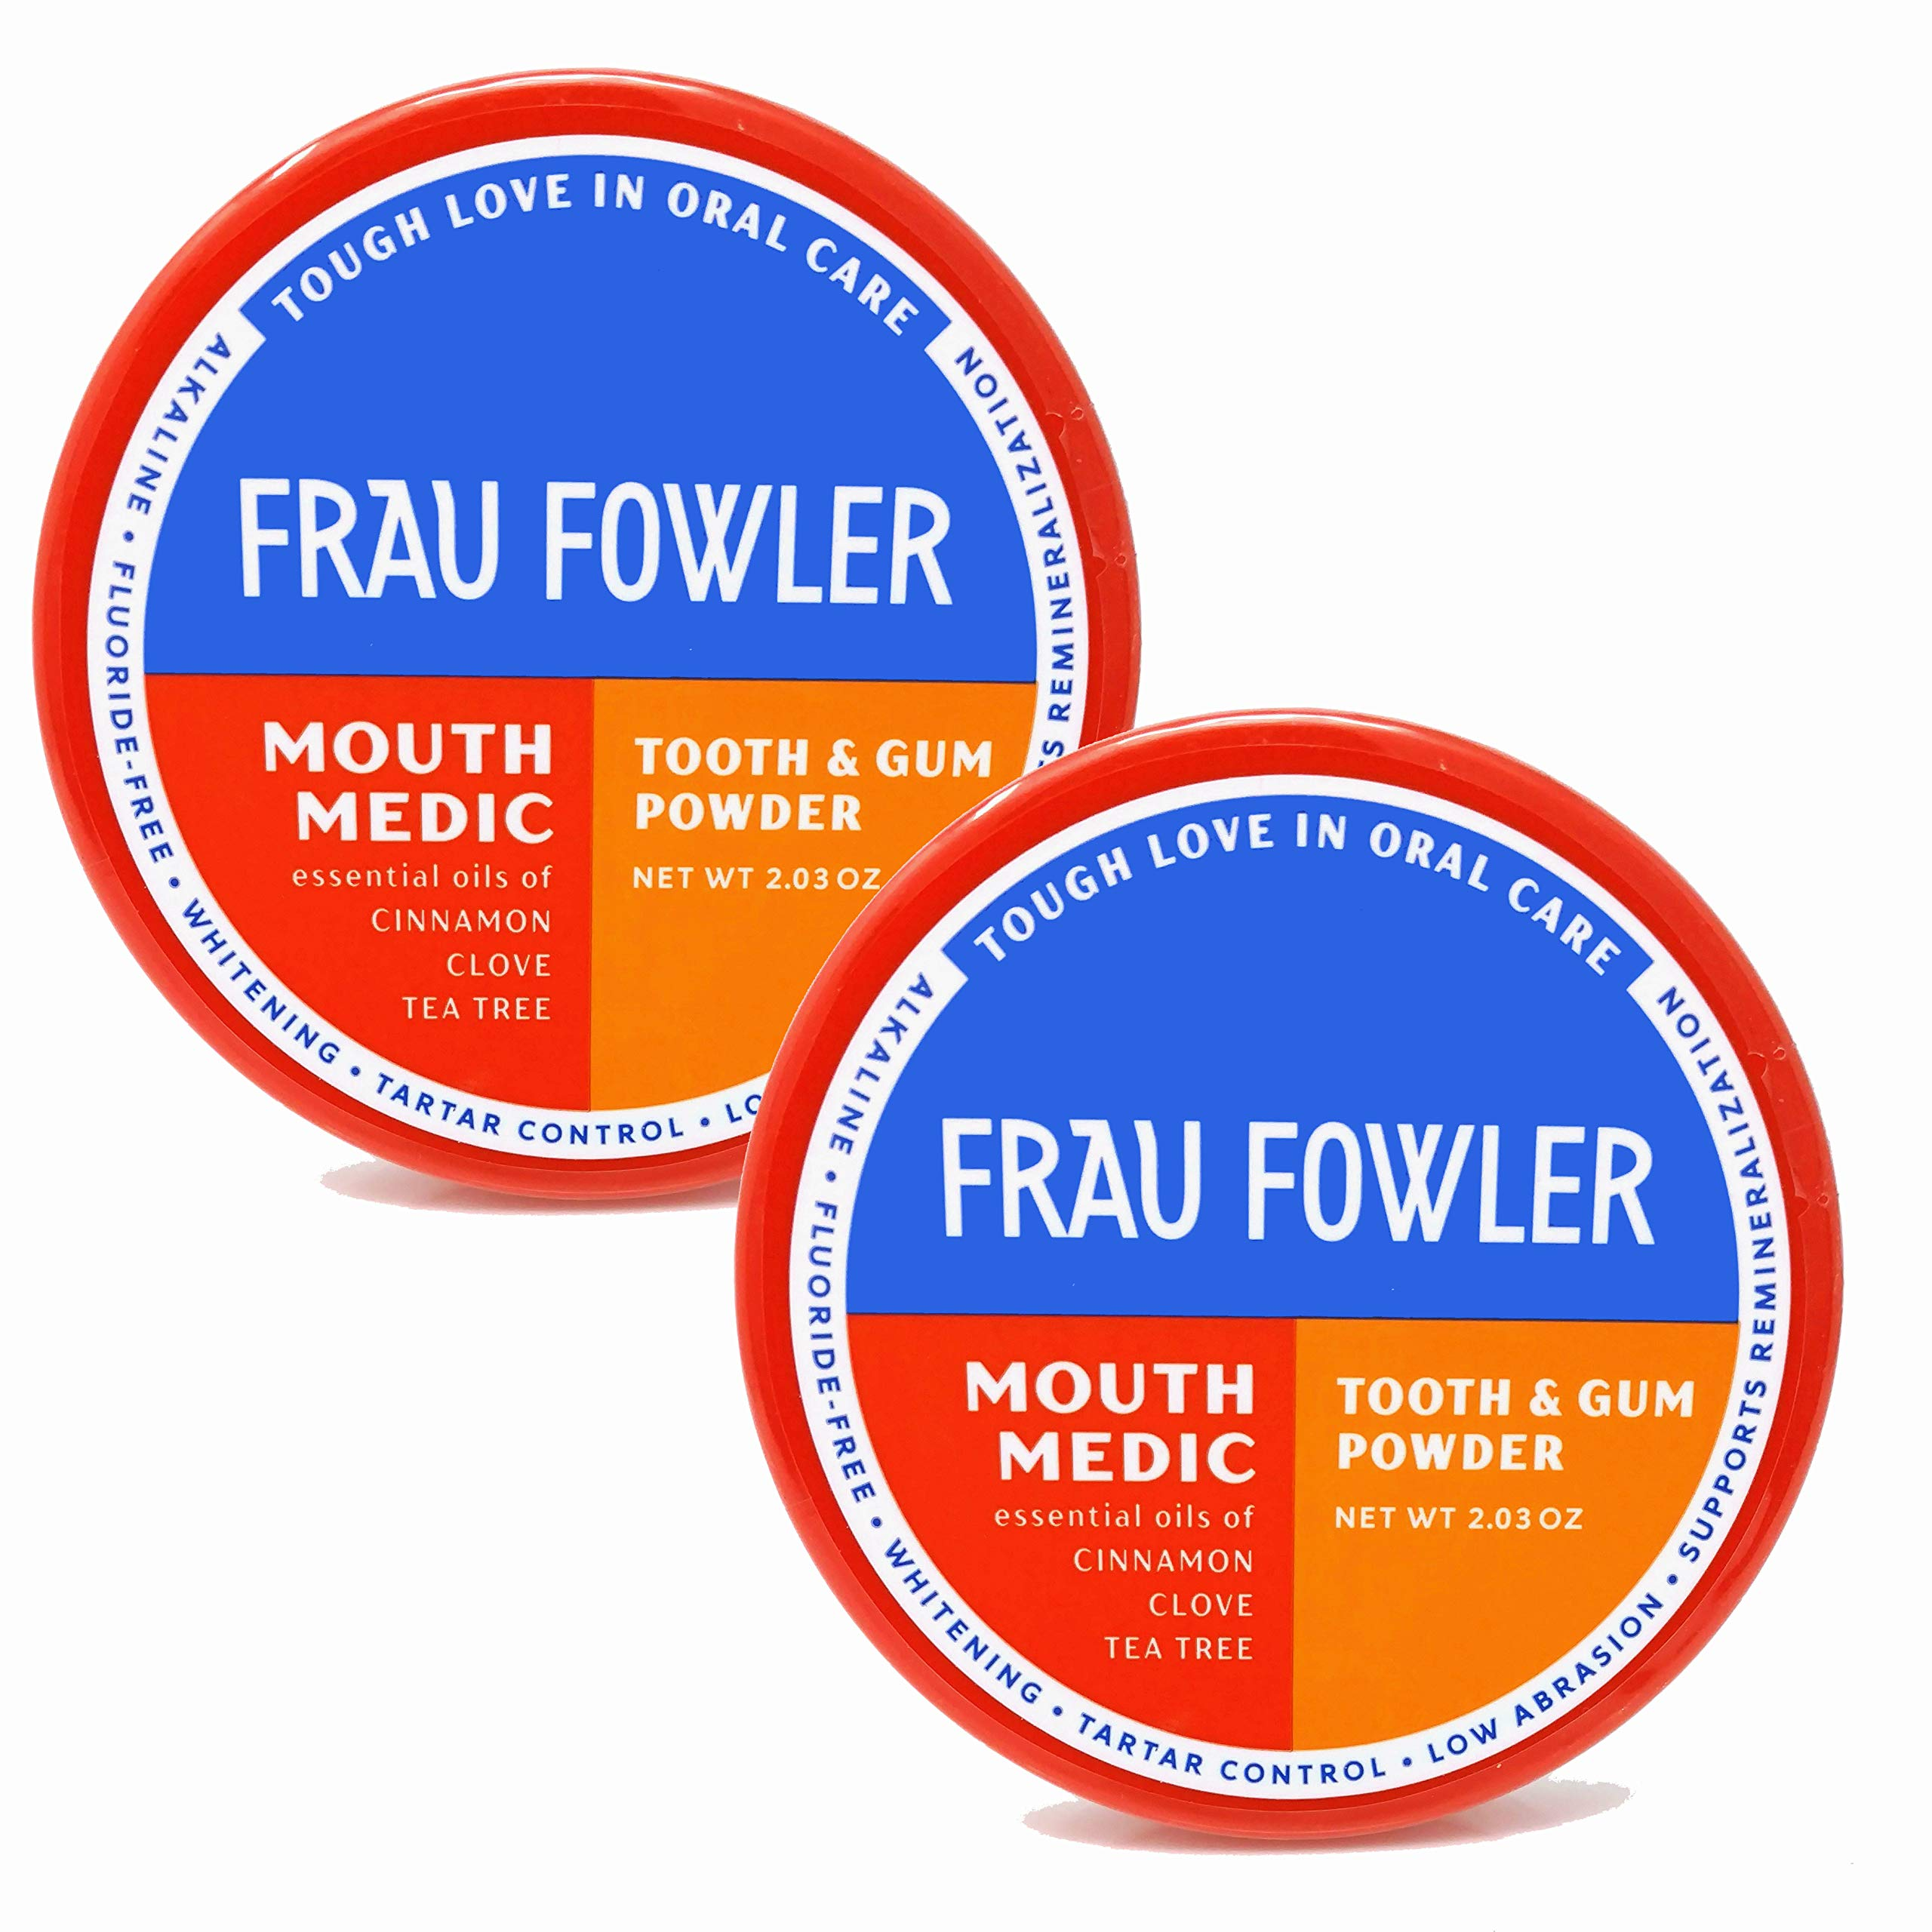 Frau Fowler Remineralizing Organic Tooth Powder, Mouth Medic (Cinnamon/Cove) 2 Pack, Tooth Whitening Naturally, Fluoride-Free, 2 oz each